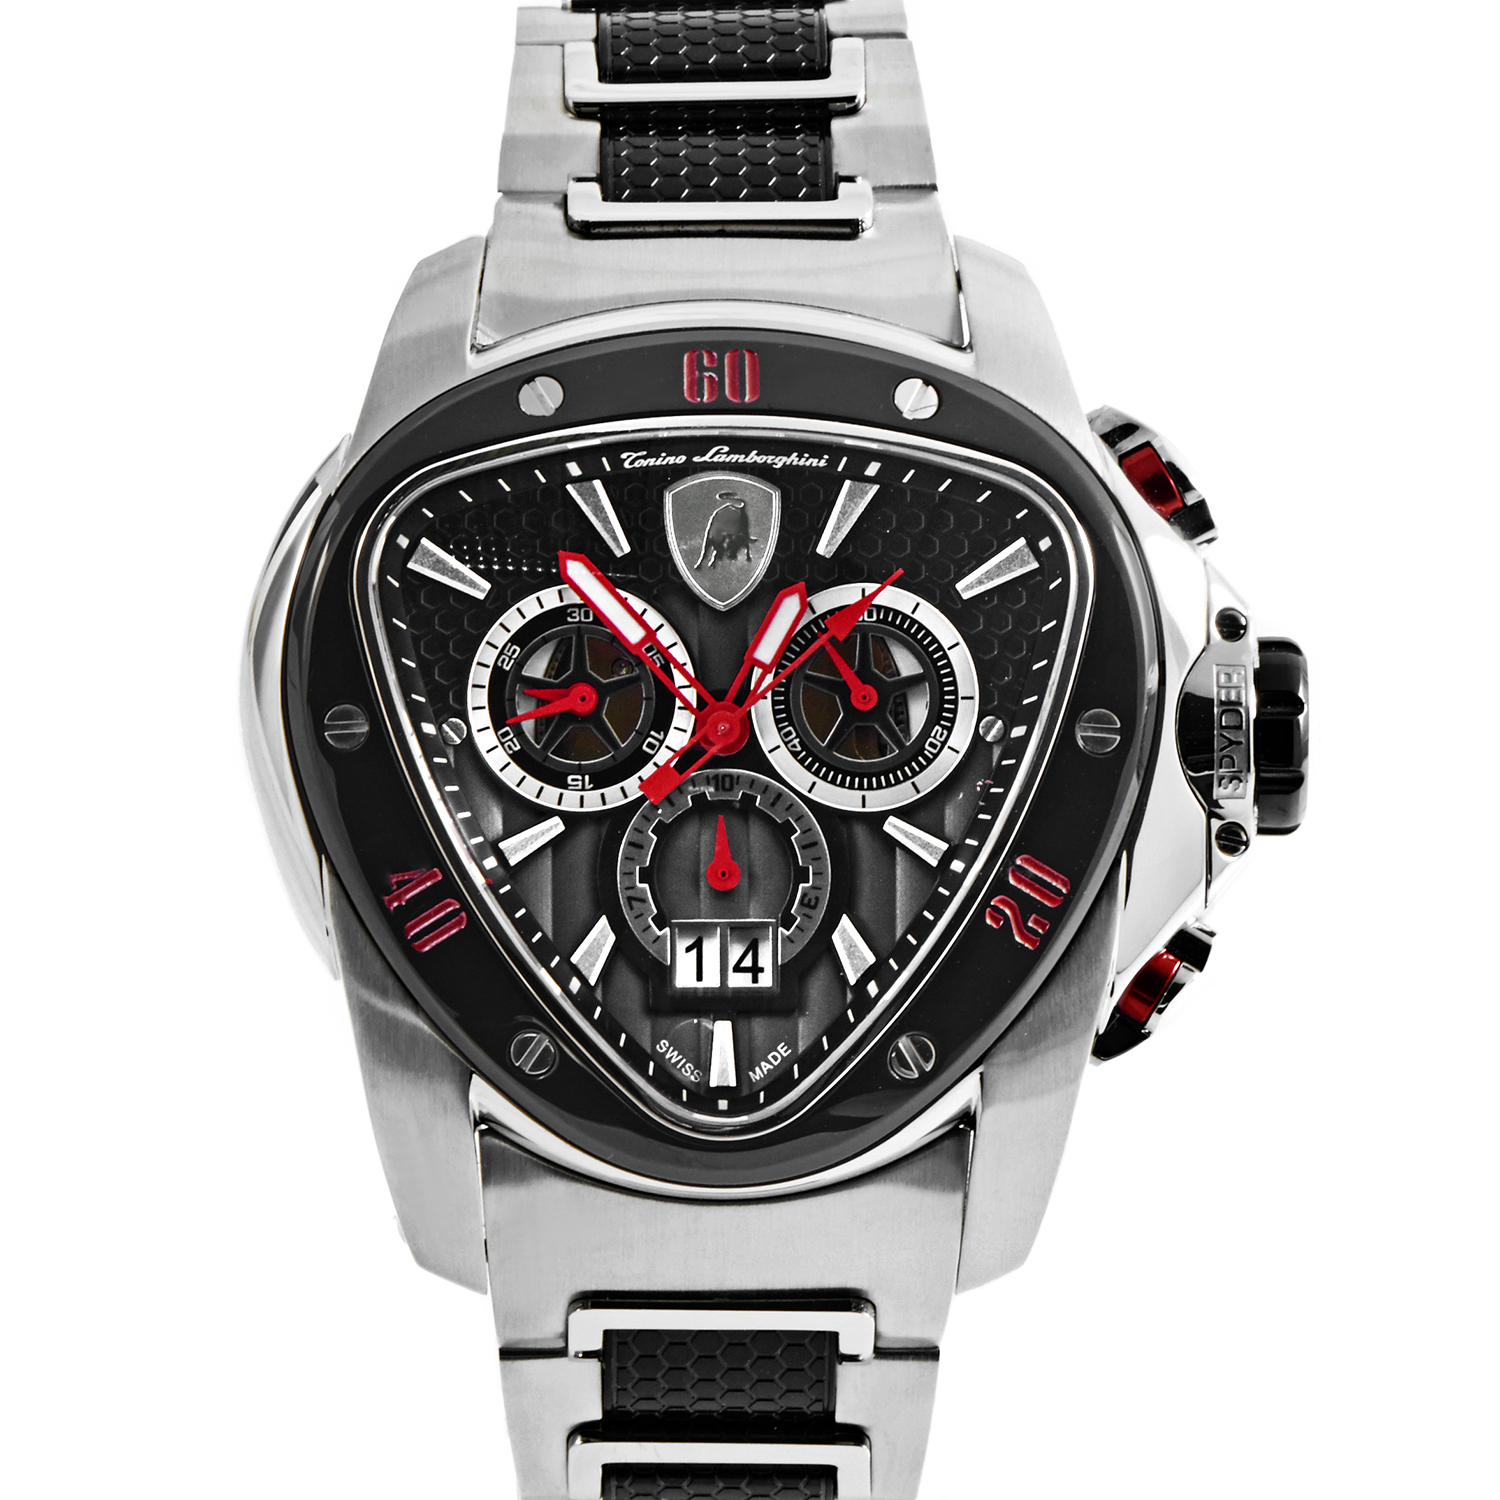 Men's Quartz Spyder Chronograph Watch 1100 1114